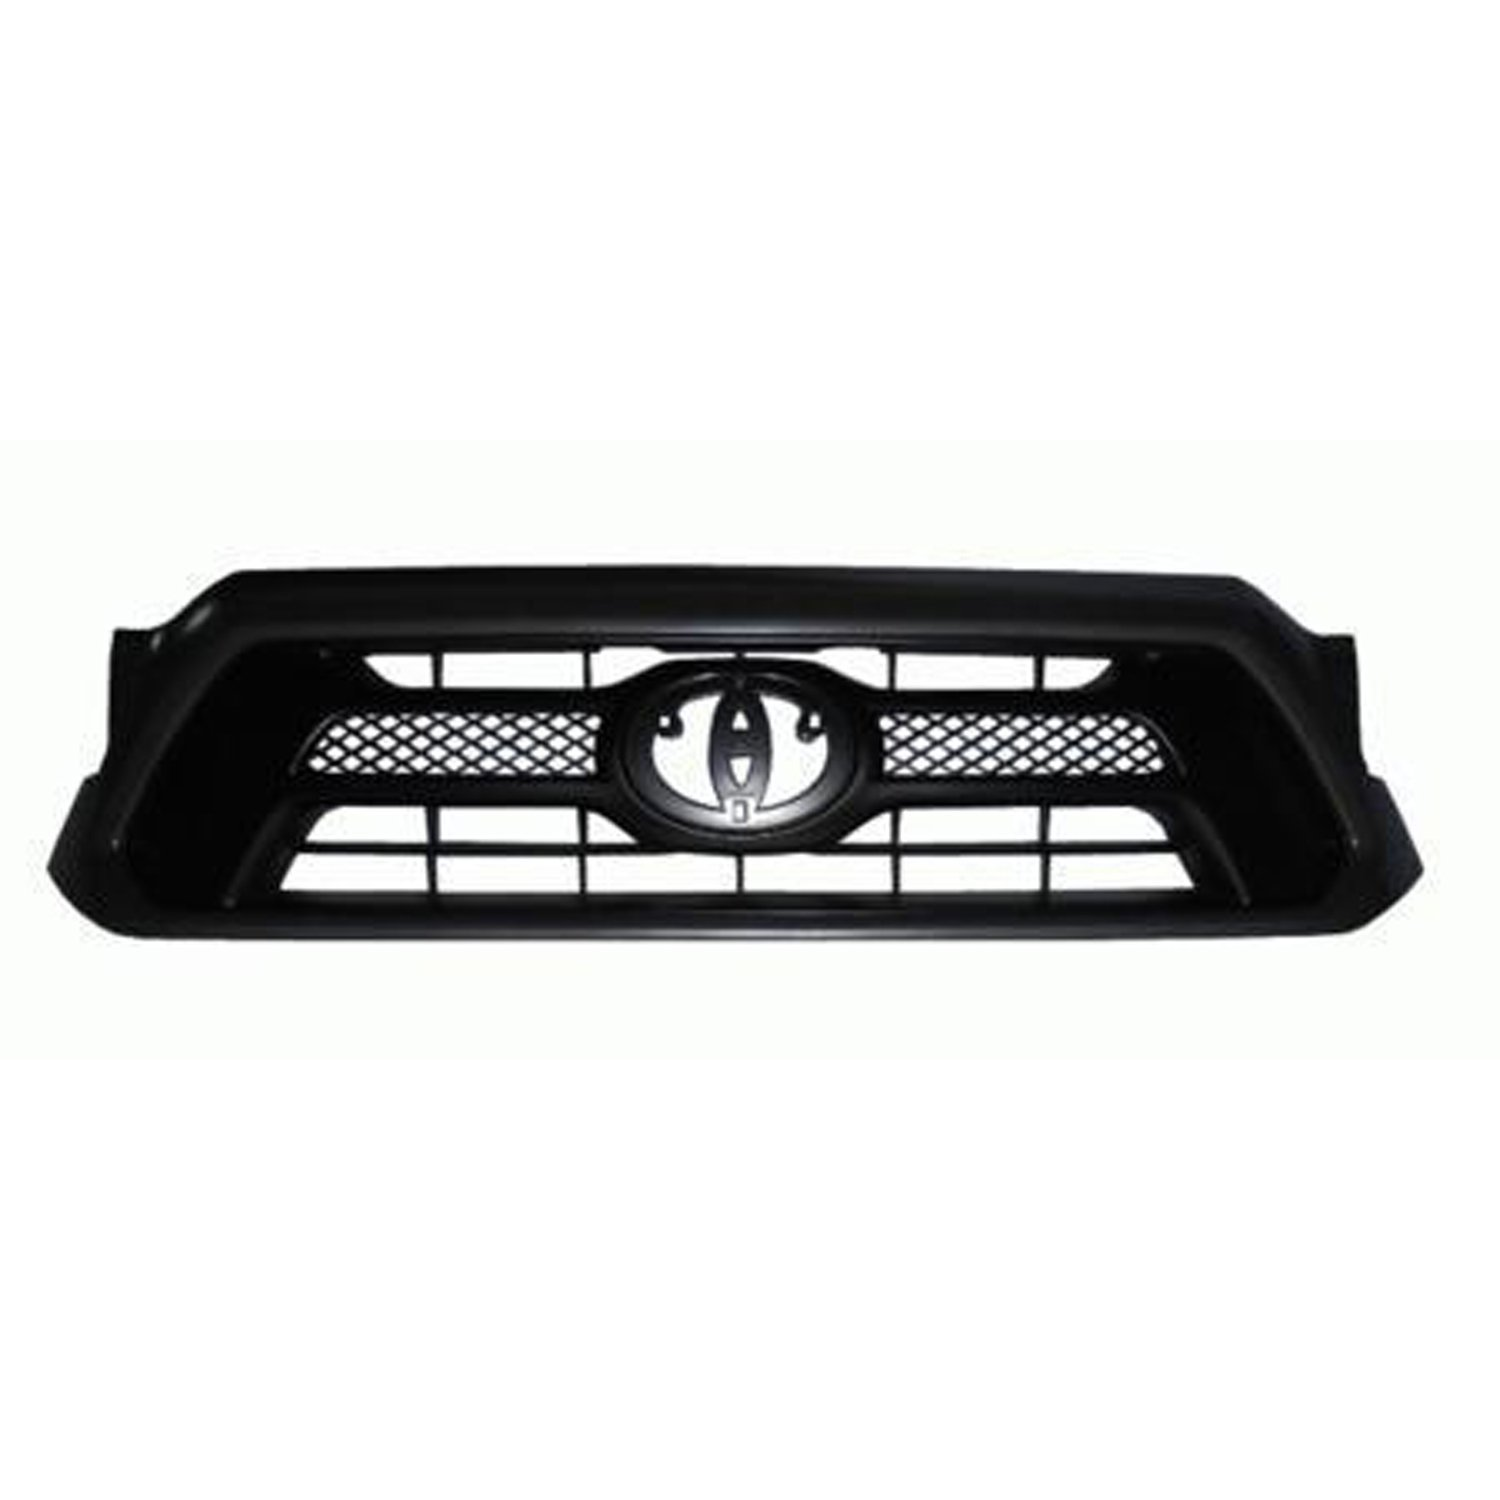 2ec386a8e16ff Cheap Grille Toyota Tacoma, find Grille Toyota Tacoma deals on line ...